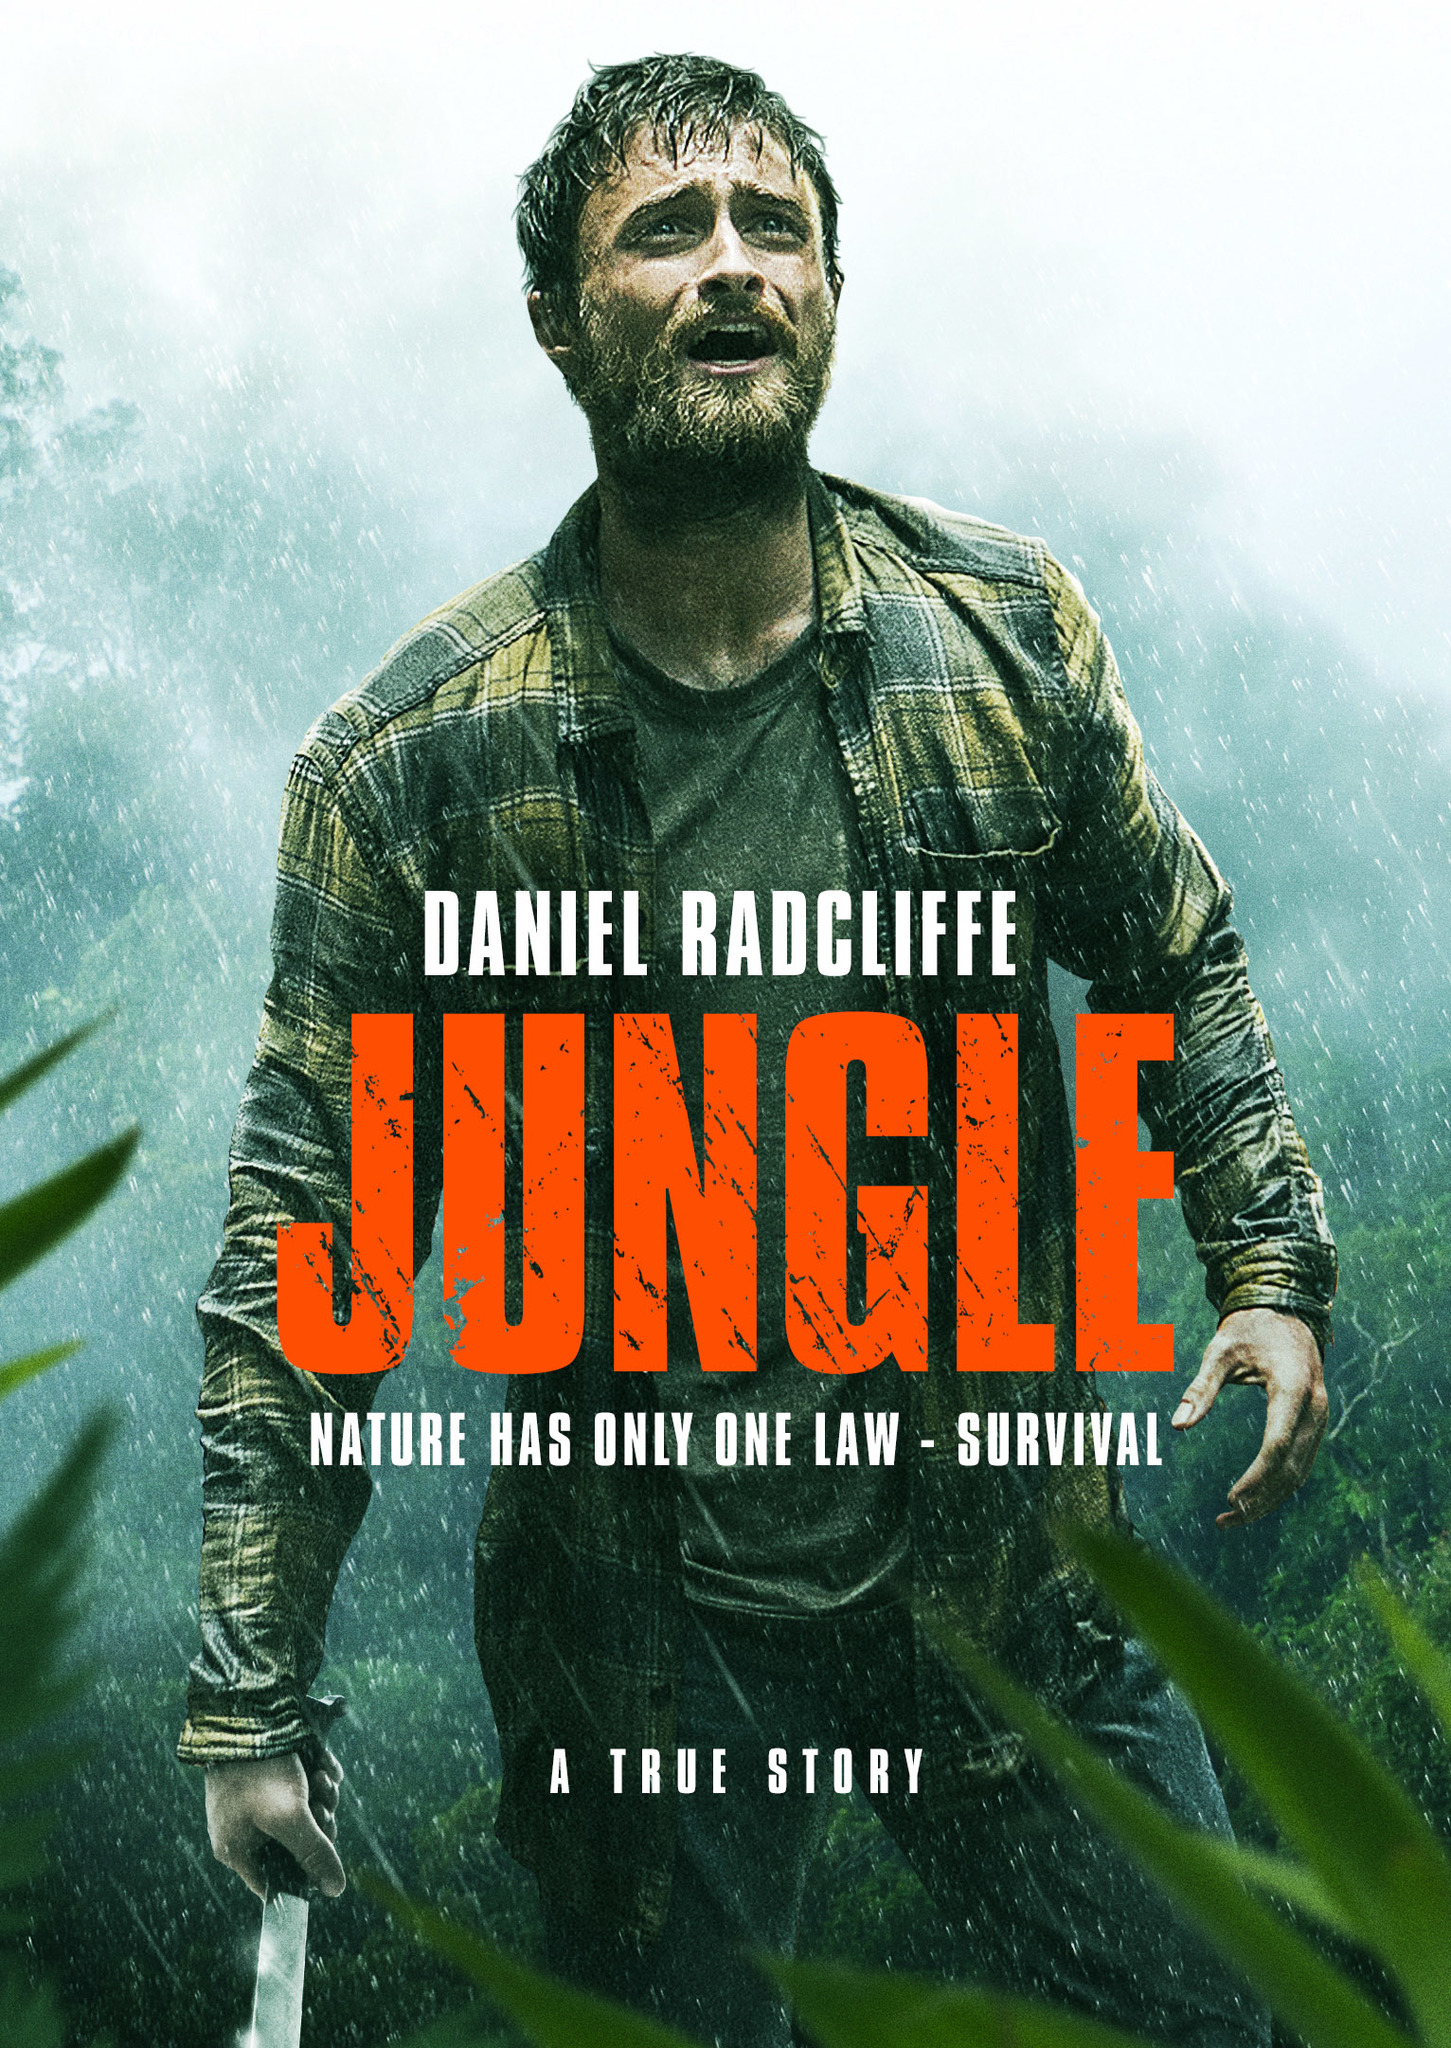 Jungle horror free videos watch download and enjoy